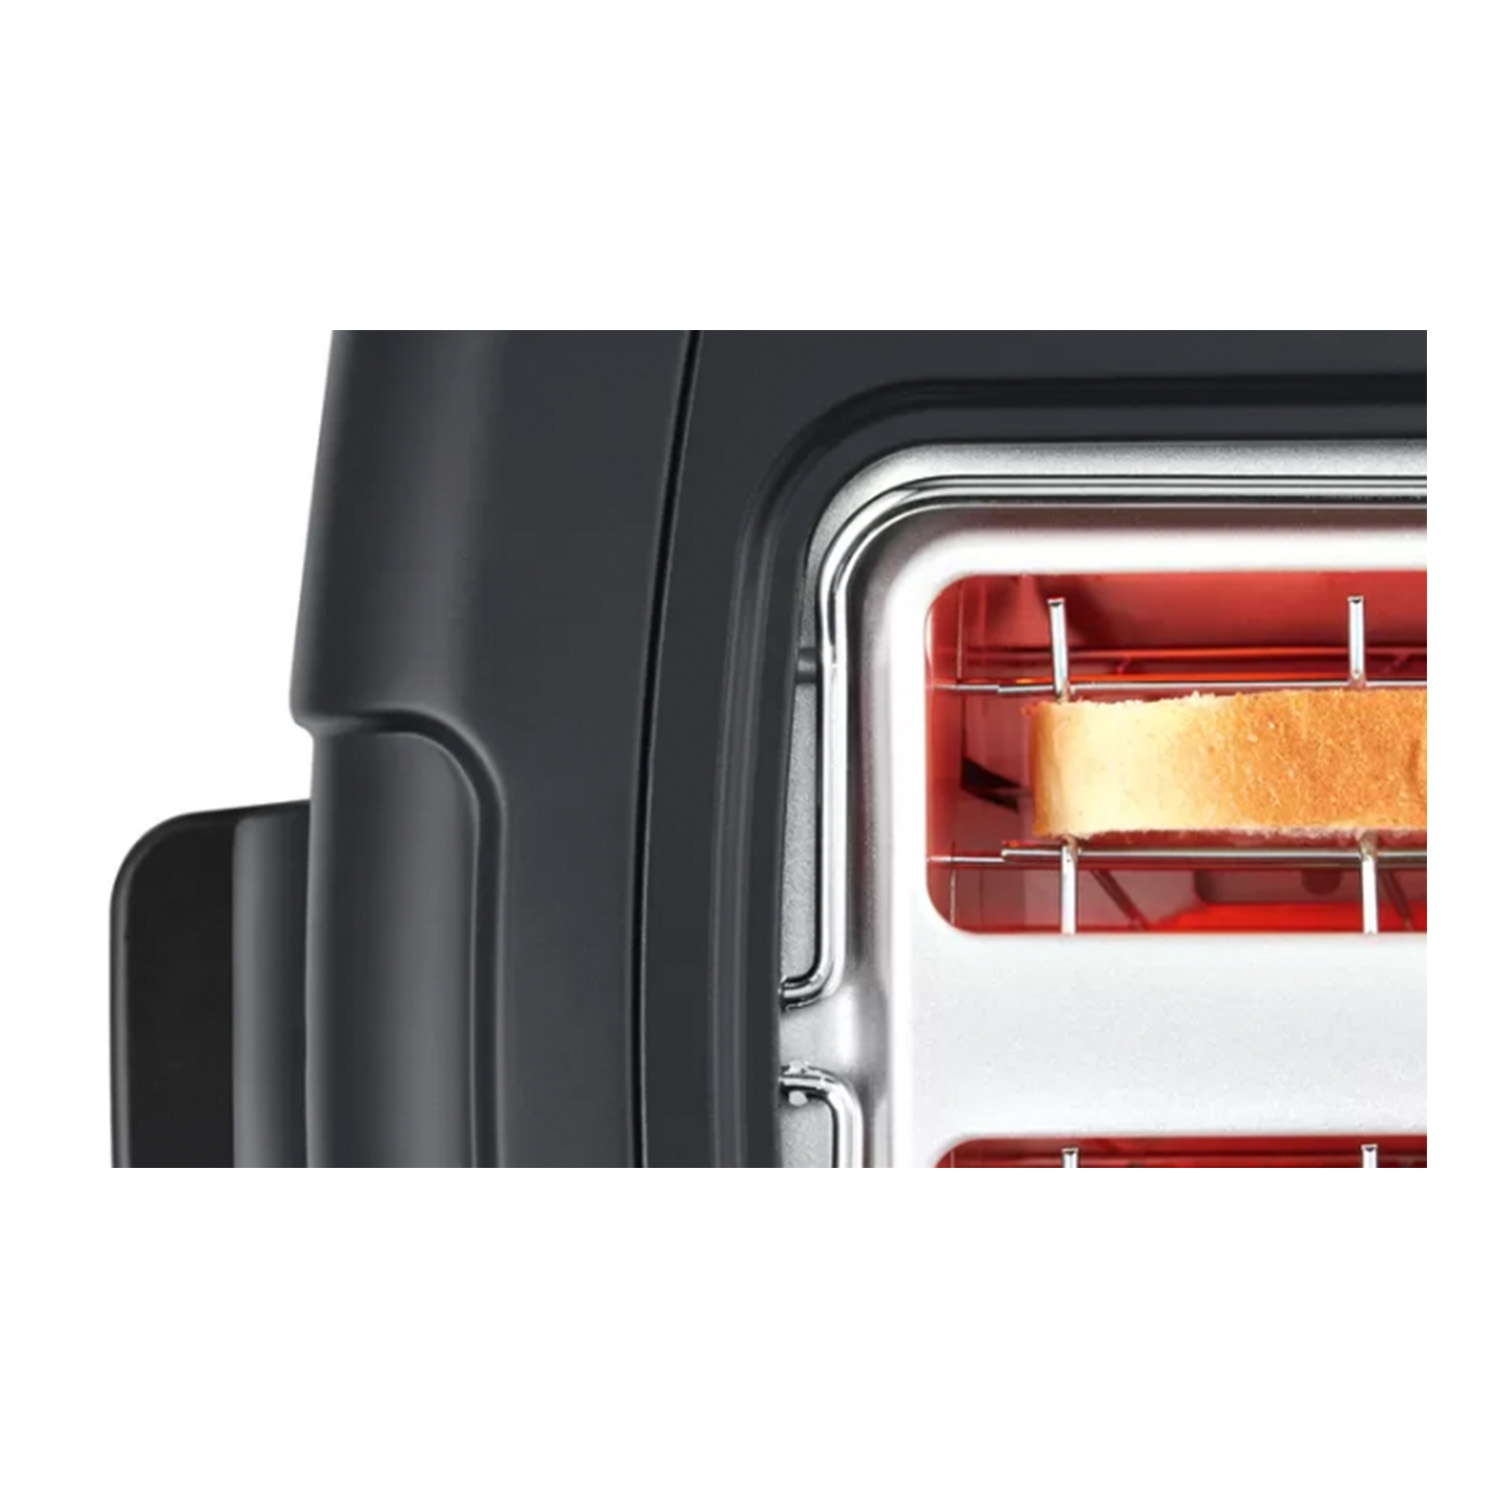 Bosch 2 Slice Toaster - Black - 4